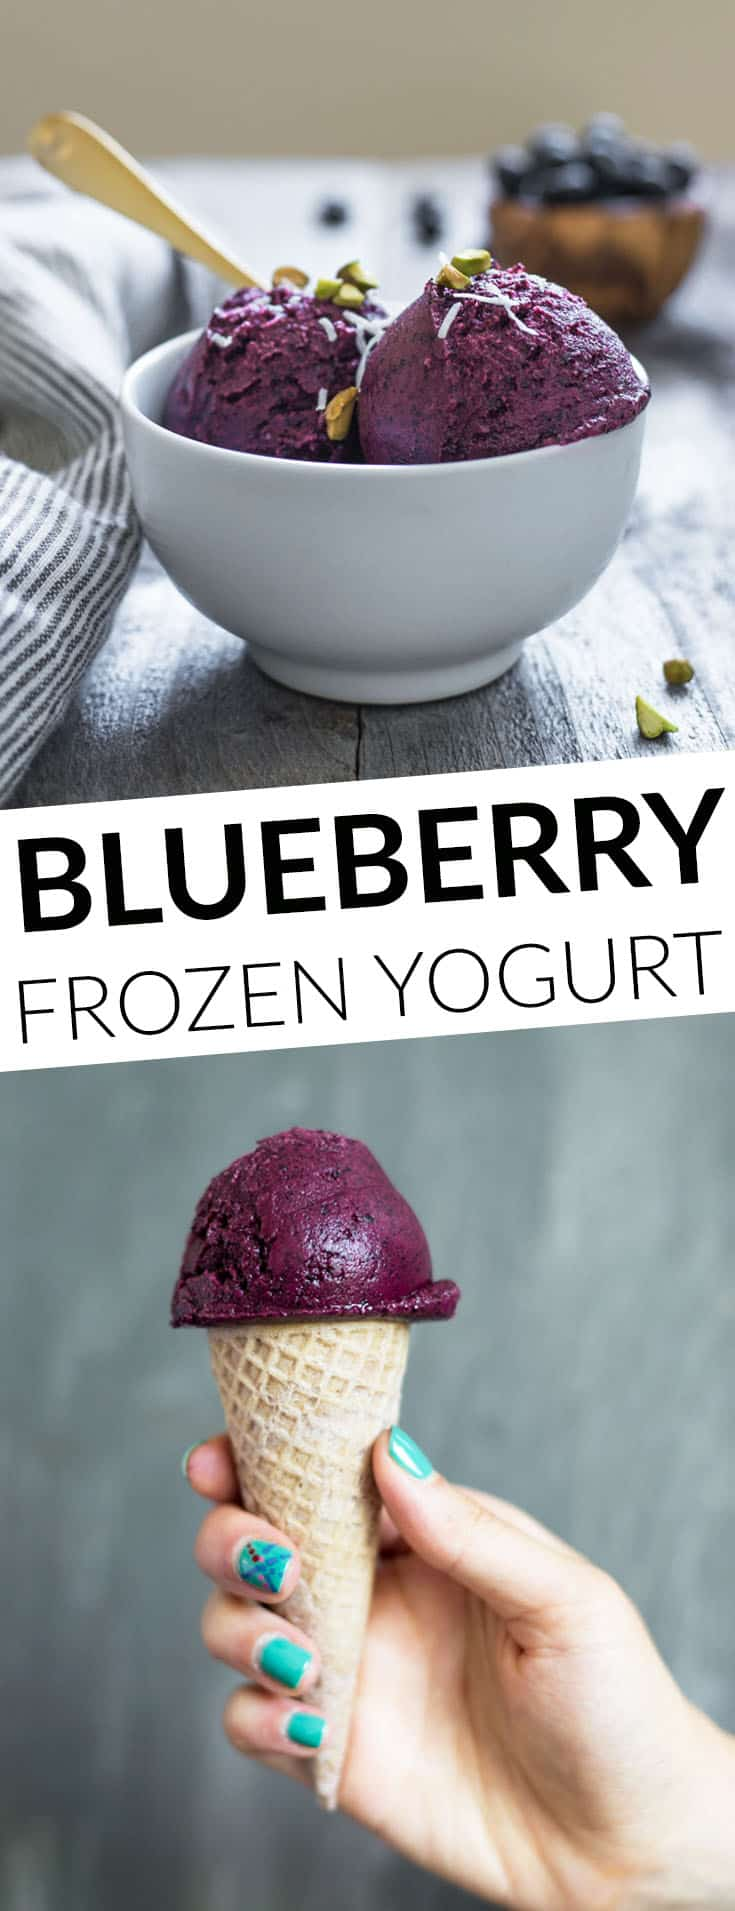 Easy homemade blueberry frozen yogurt that requires 4 ingredients only! by @healthynibs